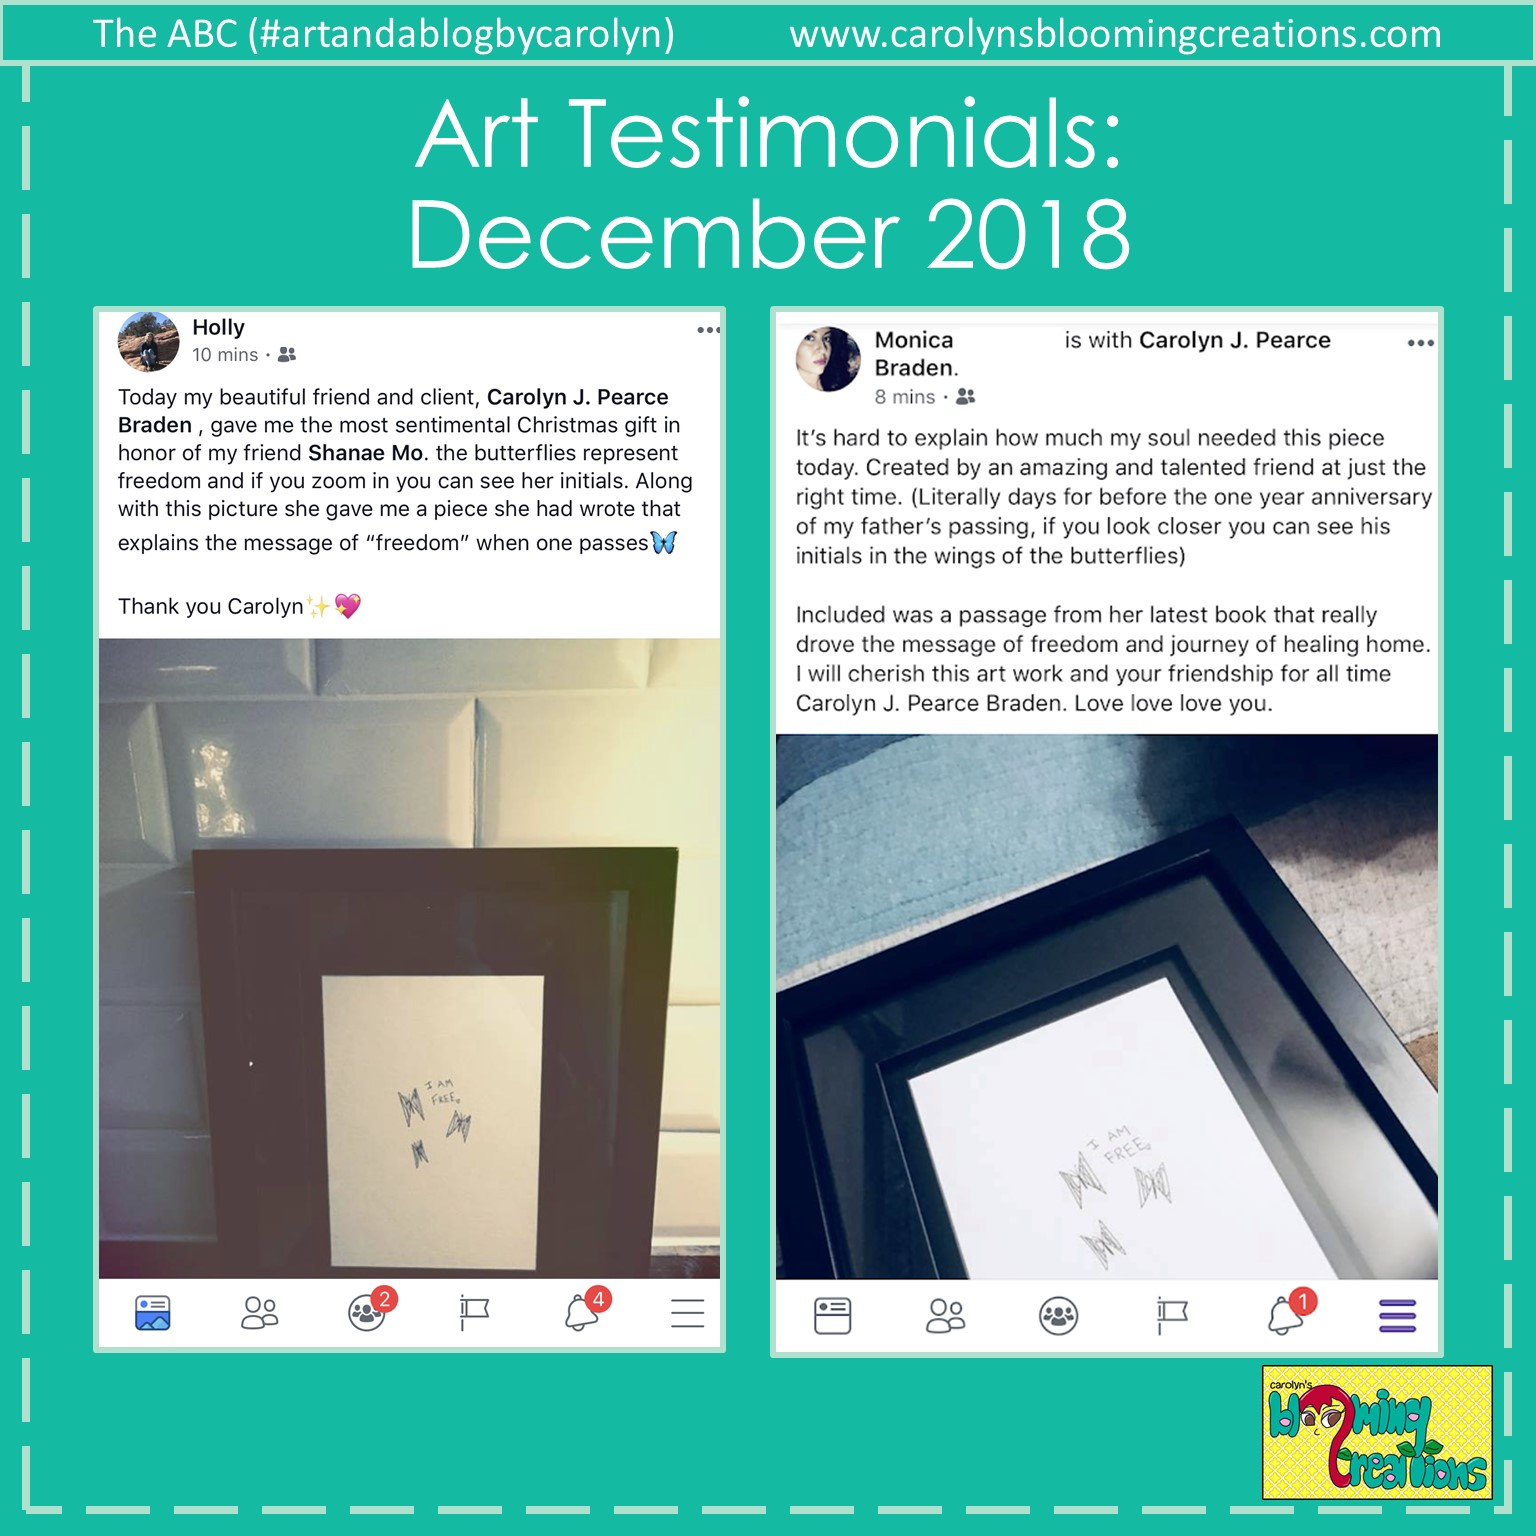 Art Testimonials by Holly and Monica, December 2018